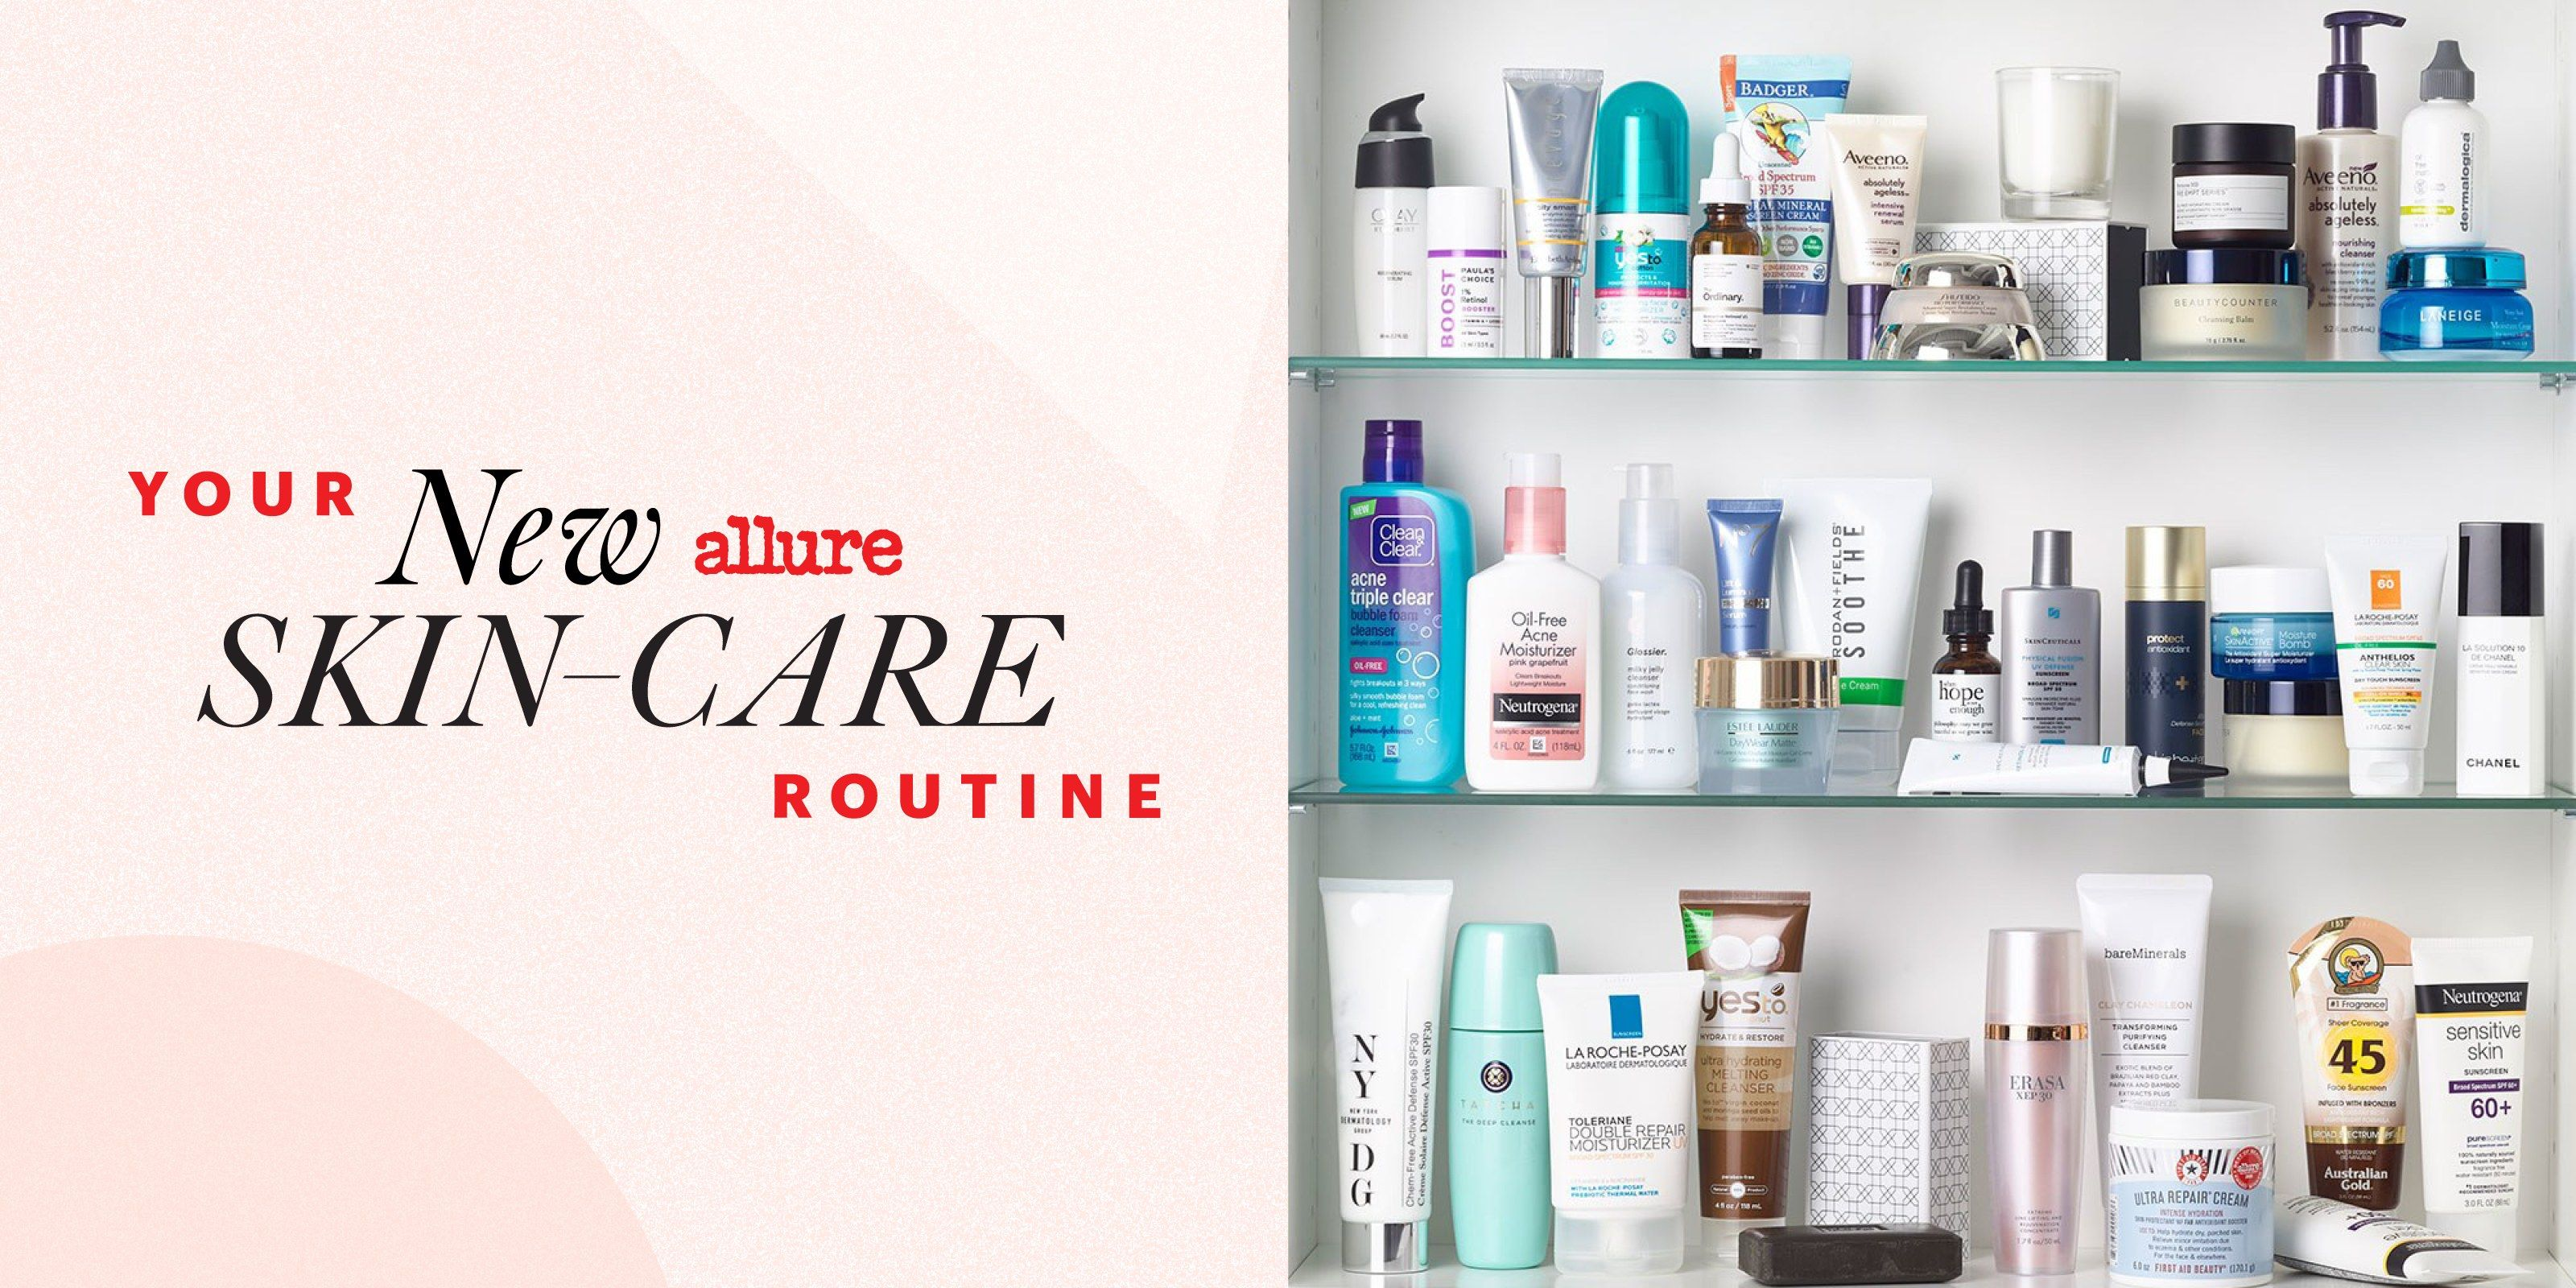 Take This Quiz To Figure Out The Best Skin Care Routine For You